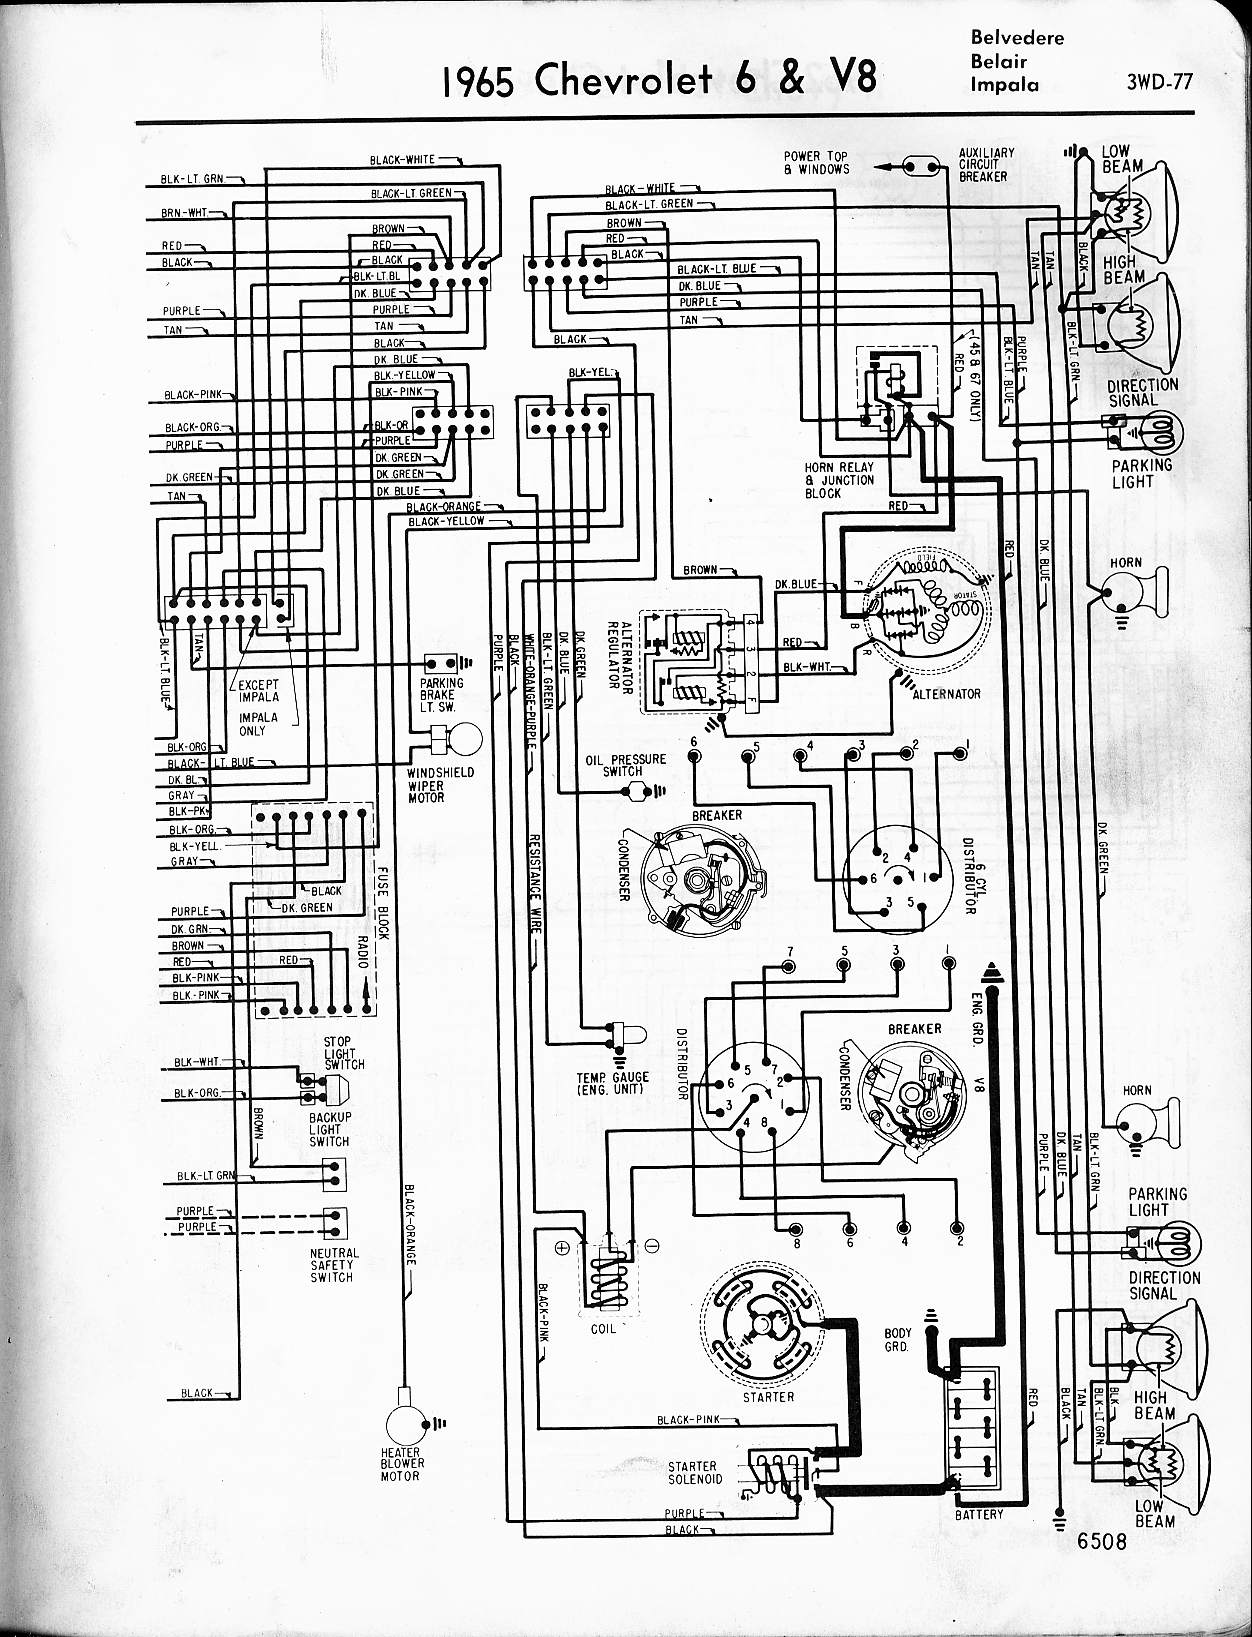 MWireChev65_3WD 077 57 65 chevy wiring diagrams 2003 impala ignition switch wiring diagram at reclaimingppi.co